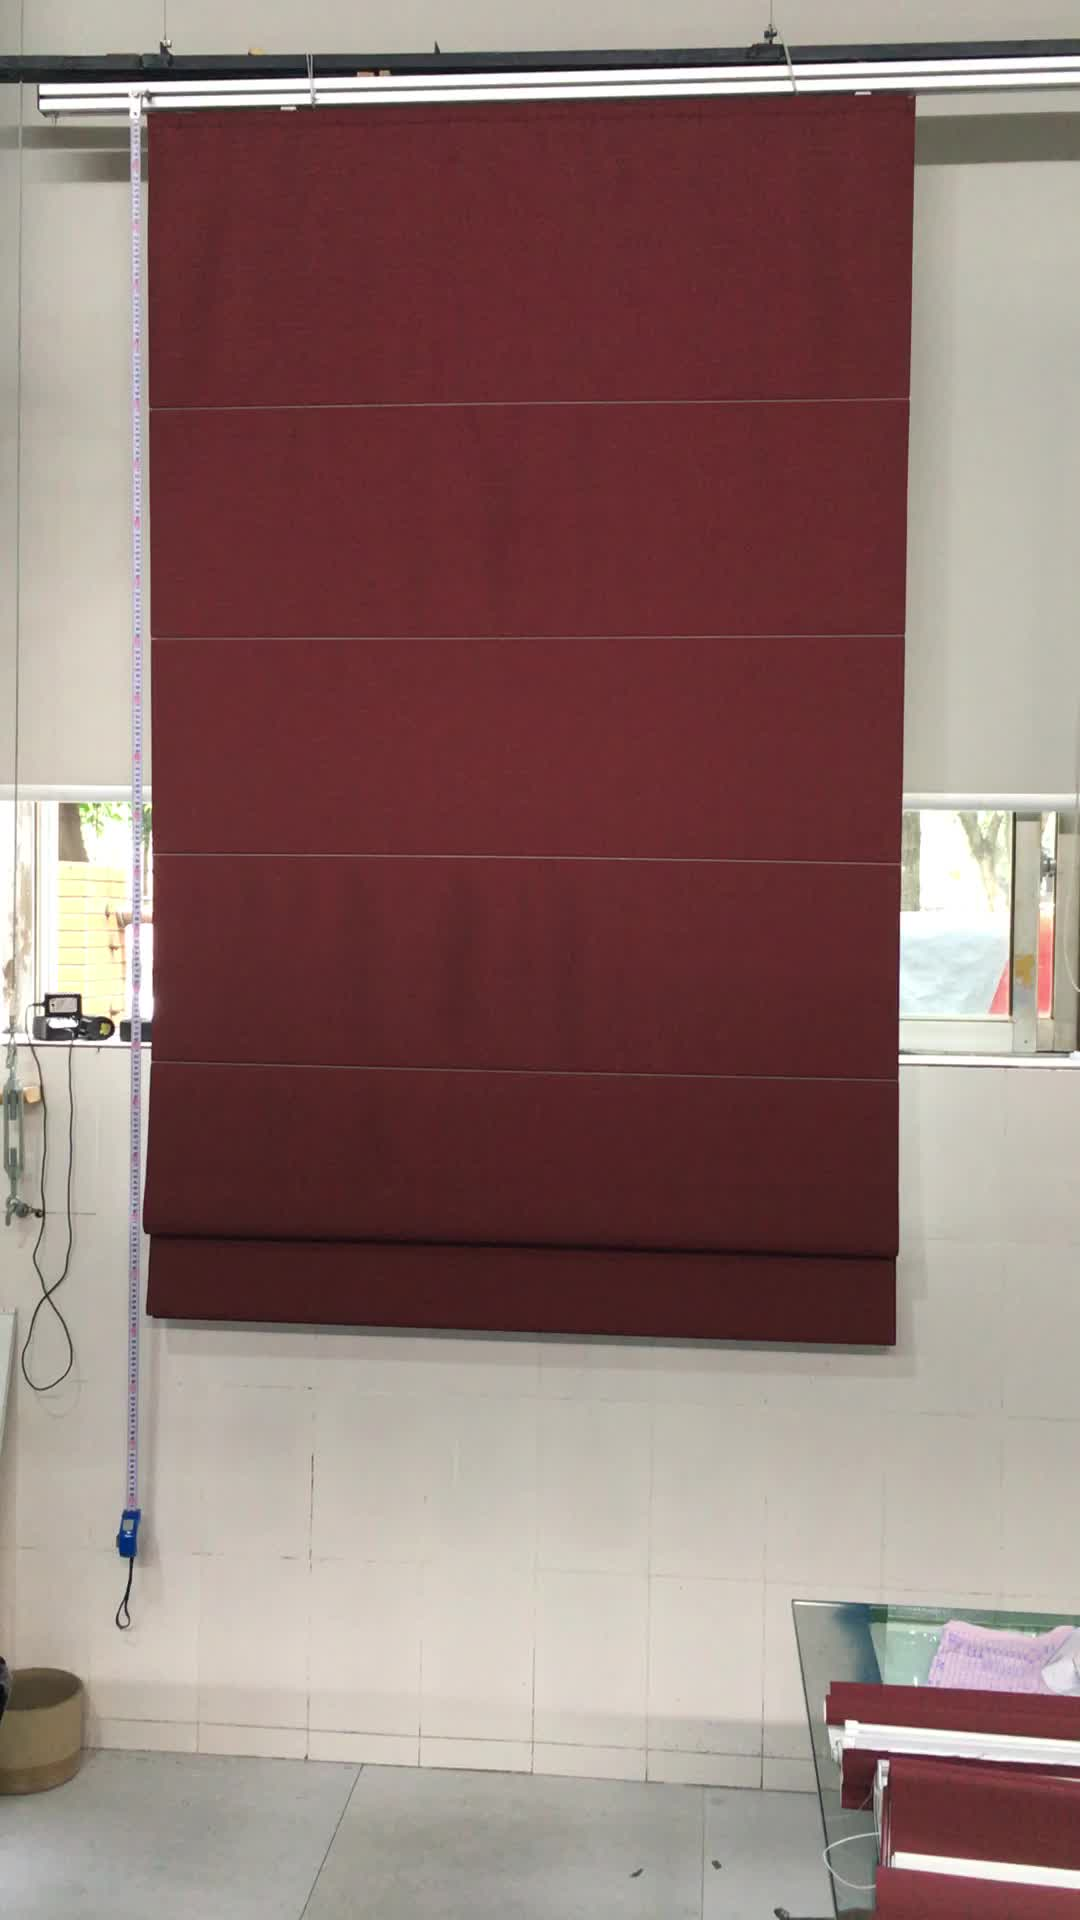 New Style Manual Or Motorized Blackout Roman Blinds Buy